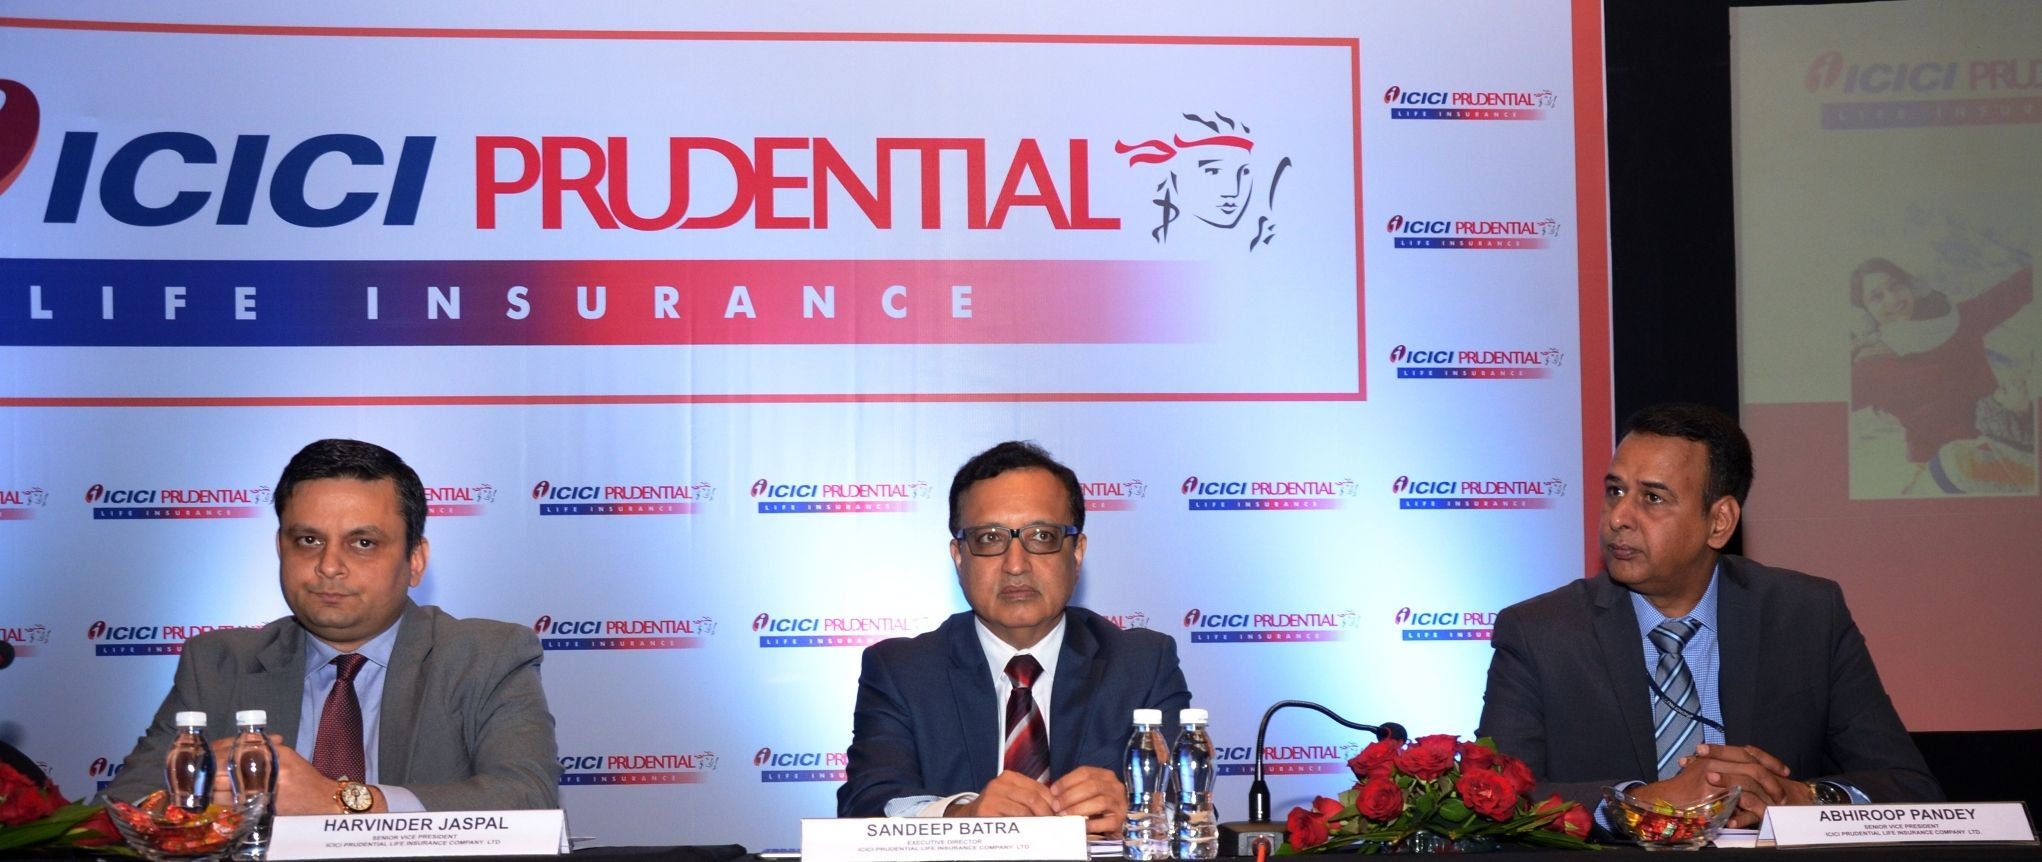 For the first time the icici prudential life insurance